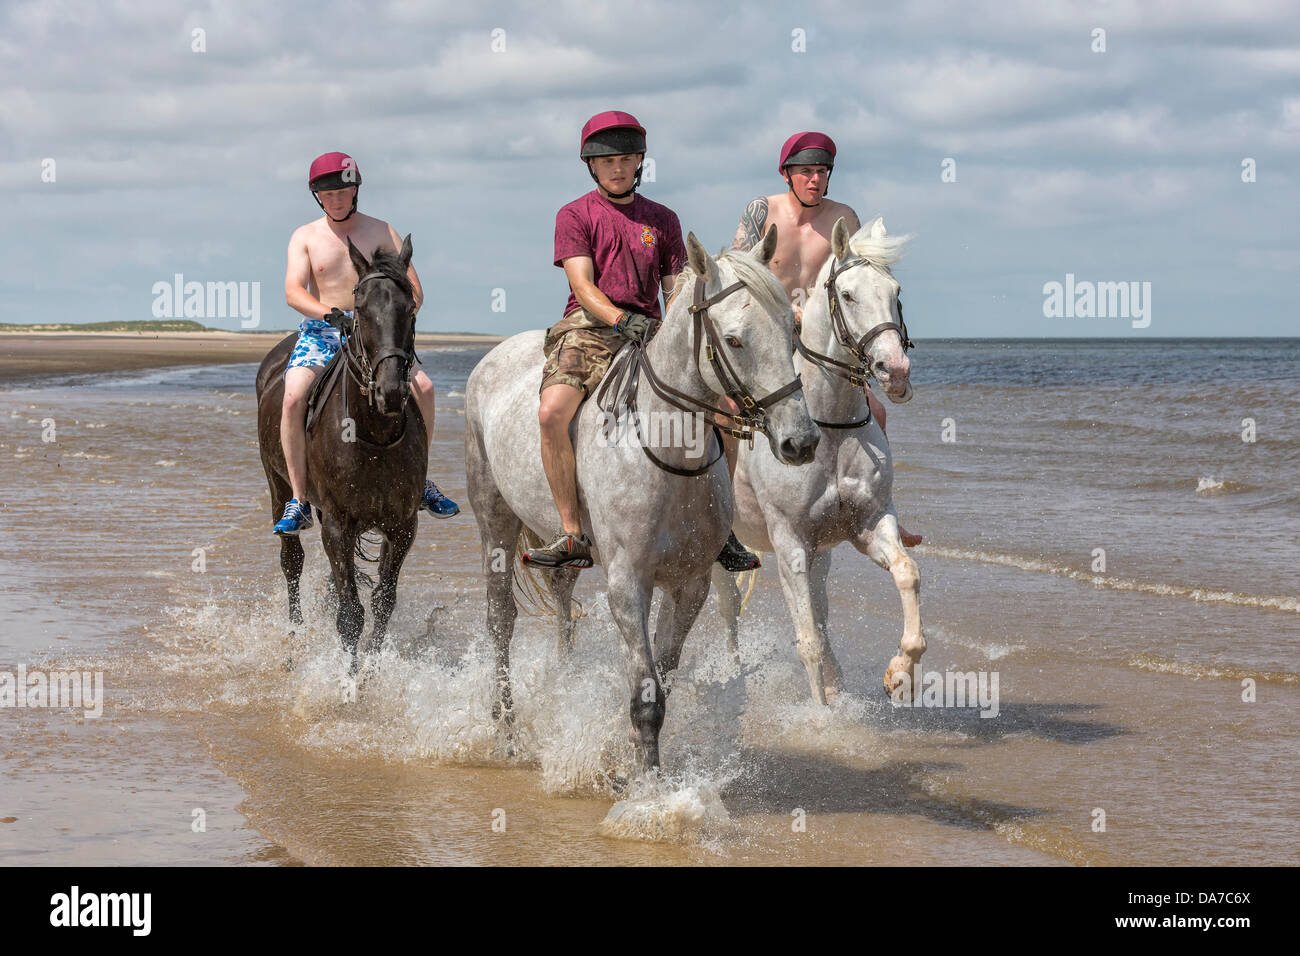 Holkham, Norfolk, UK. 4th July, 2013. The Household cavalry - Three members of the  Lifeguards riding on Holkham - Stock Image